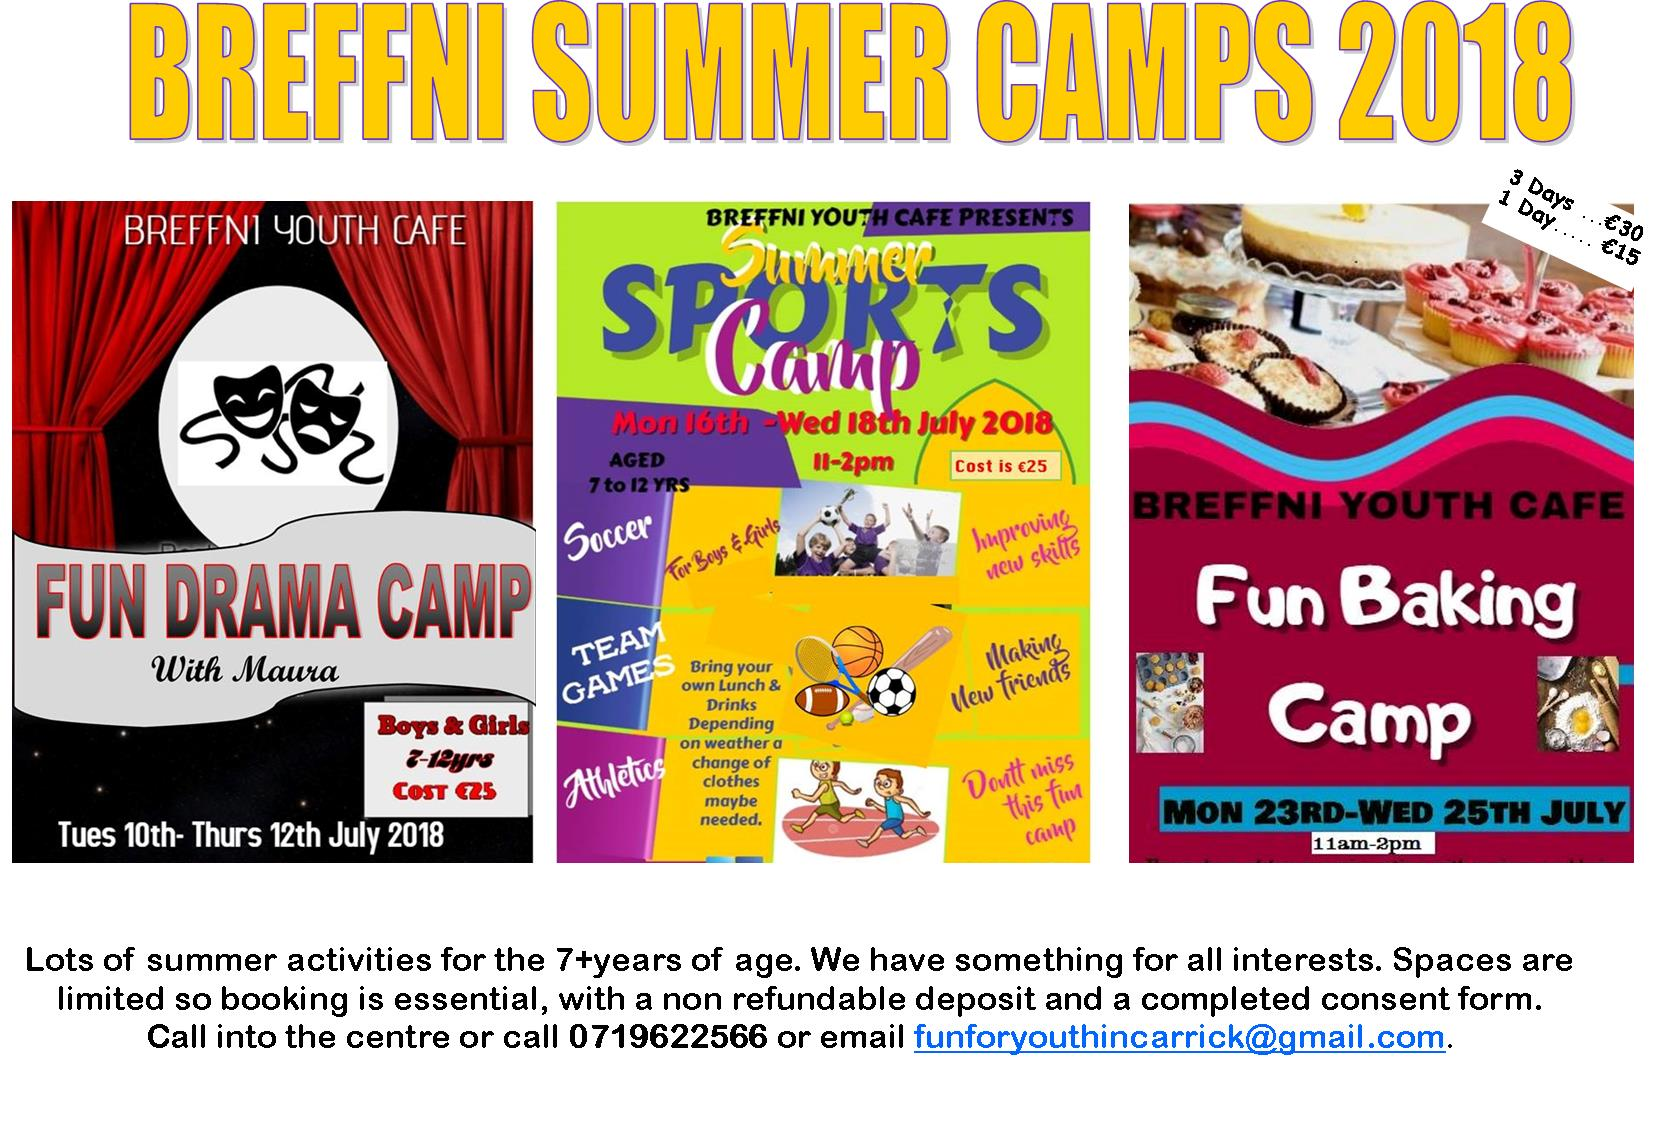 MyCarrick Event - Breffni Family Resource Centre - Summer Camps